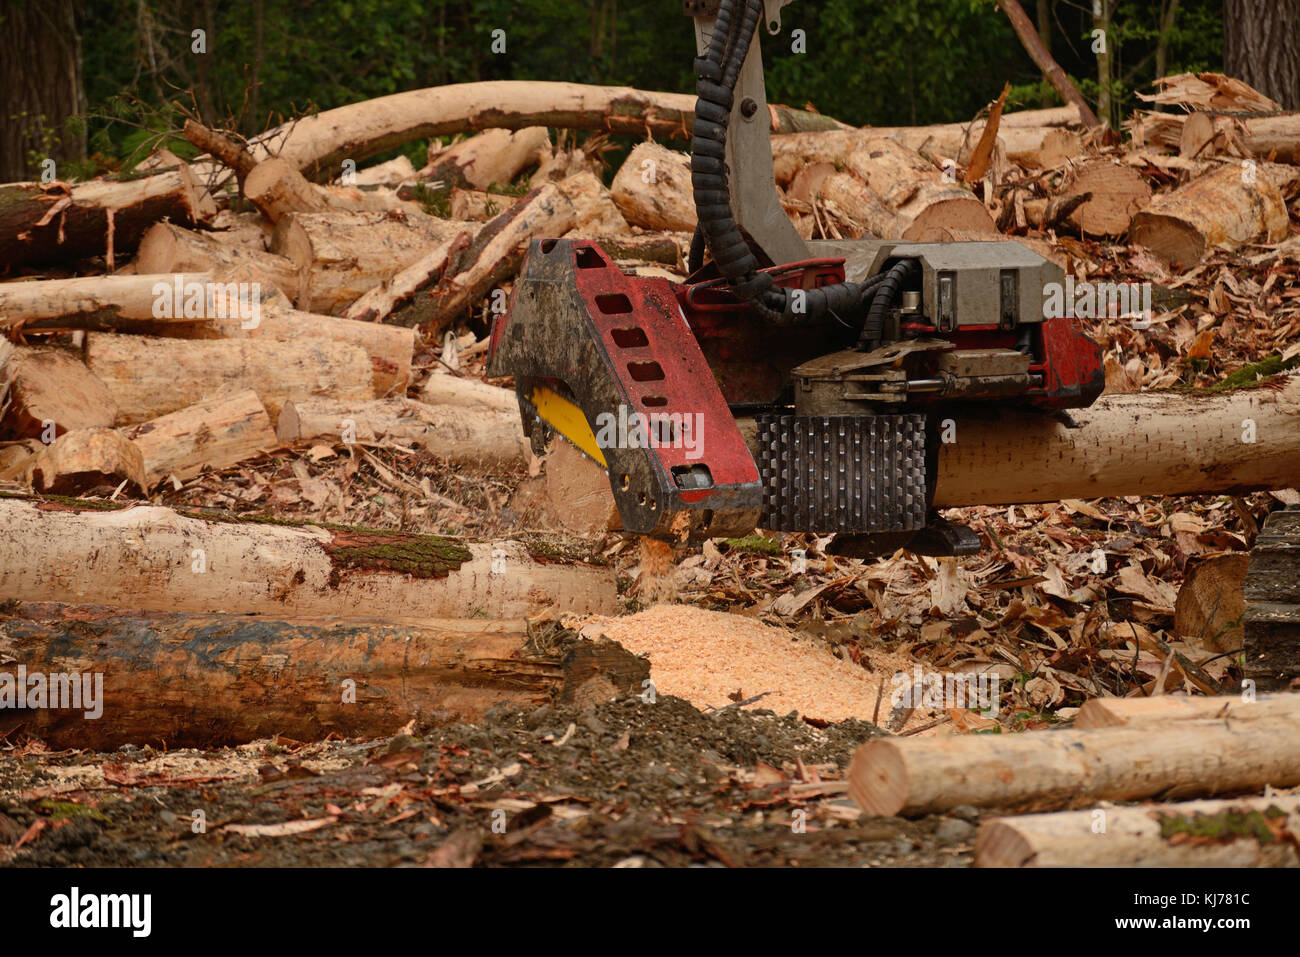 An autocutter attachment on a digger measures and  trims a Pinus radiata log at a logging site - Stock Image